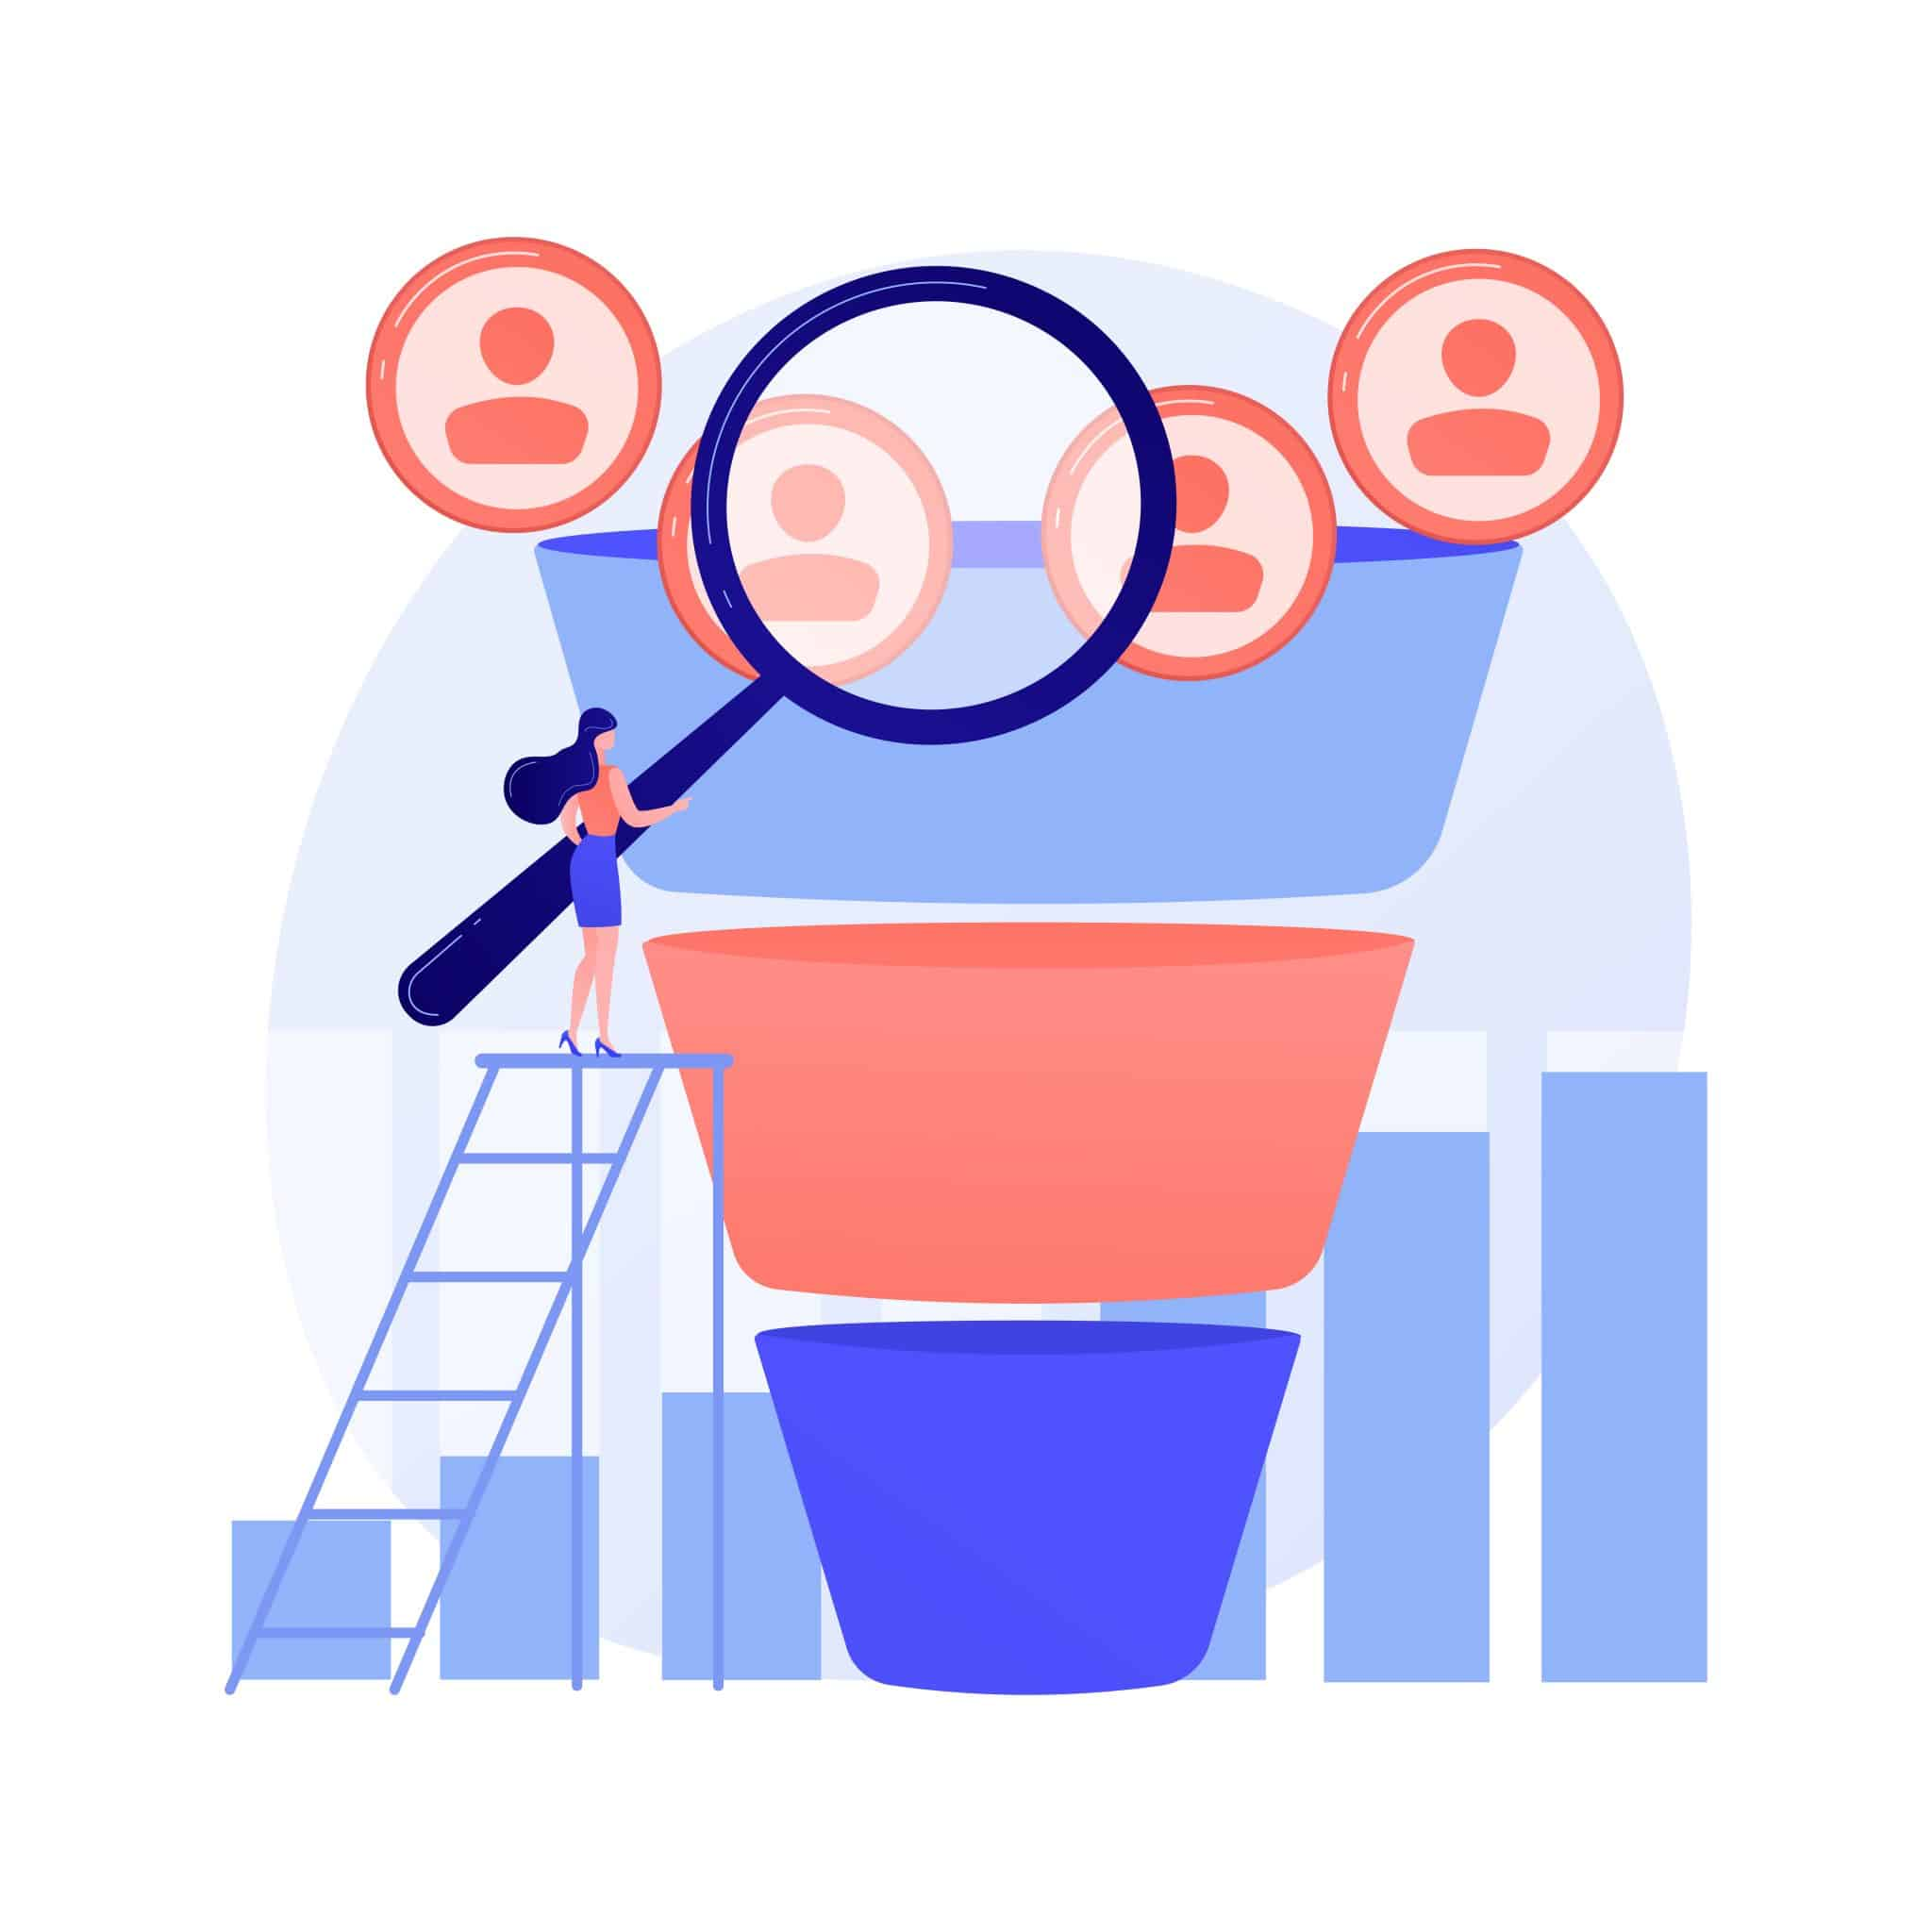 Marketing funnel abstract concept vector illustration. Internet marketing technique, sales funnel formula, product cycle, advertising system control, awareness conversion abstract metaphor.